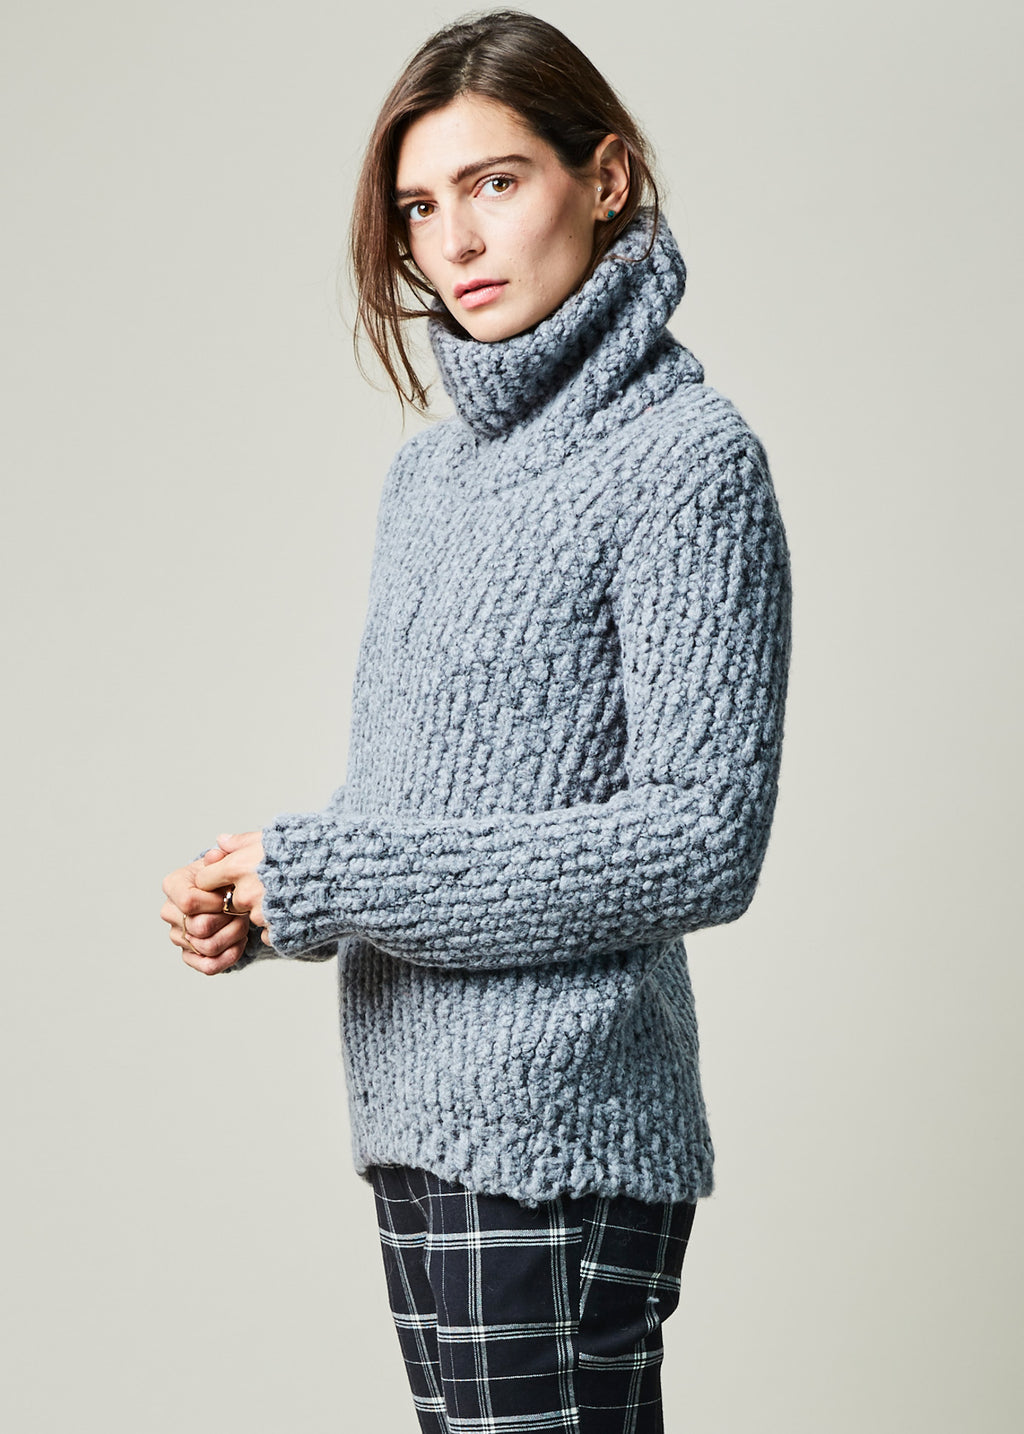 Bergman Knit Turtleneck Sweater